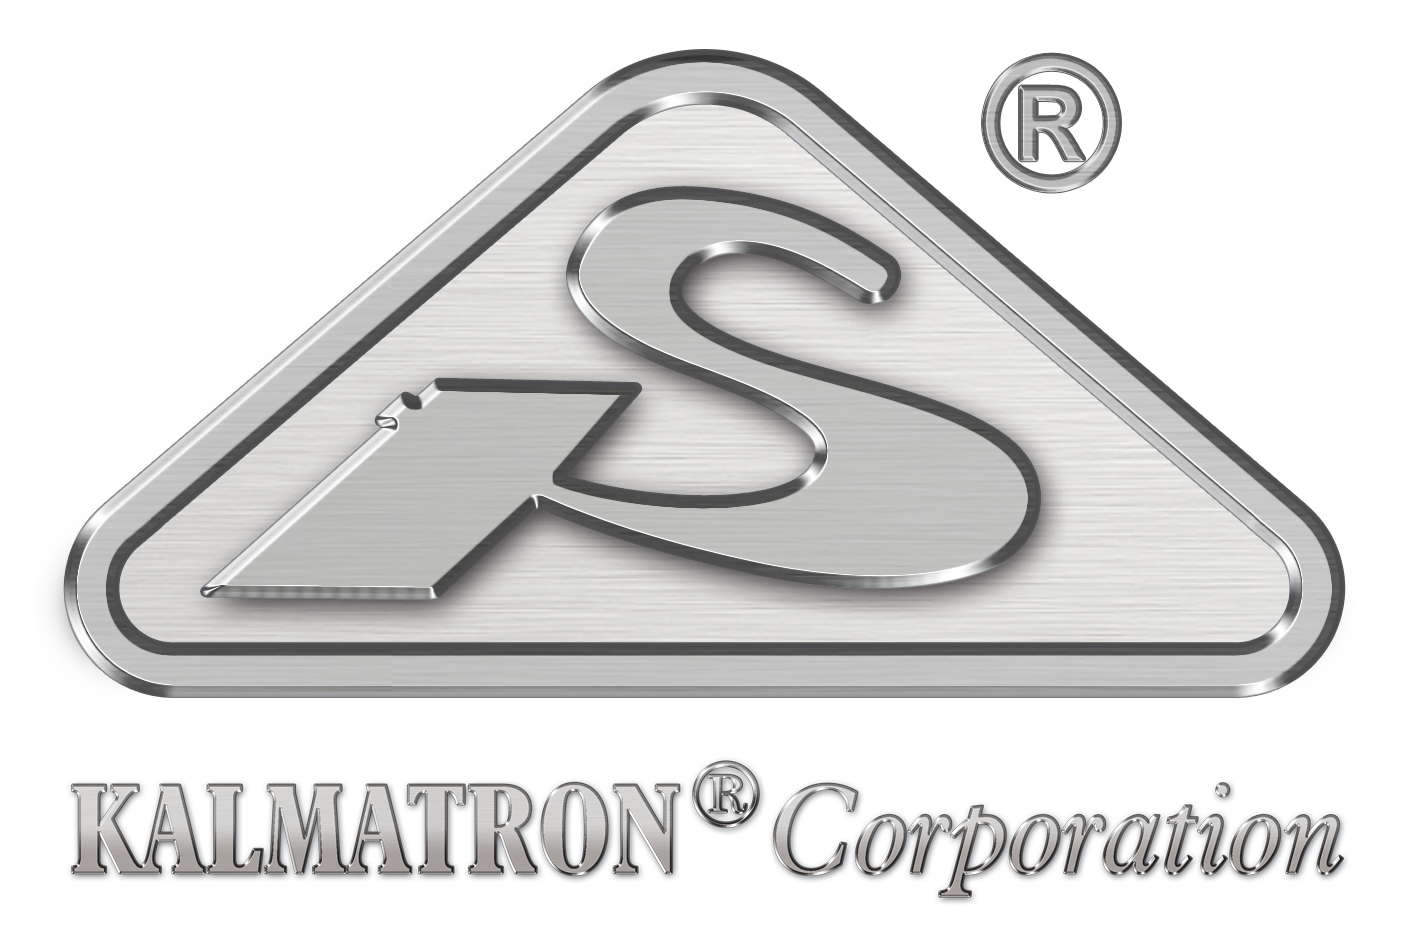 Kalmatron Corporation in South San Francisco, CA. Chemical admixtures for concrete, waterproof & corrosion resistance applications.